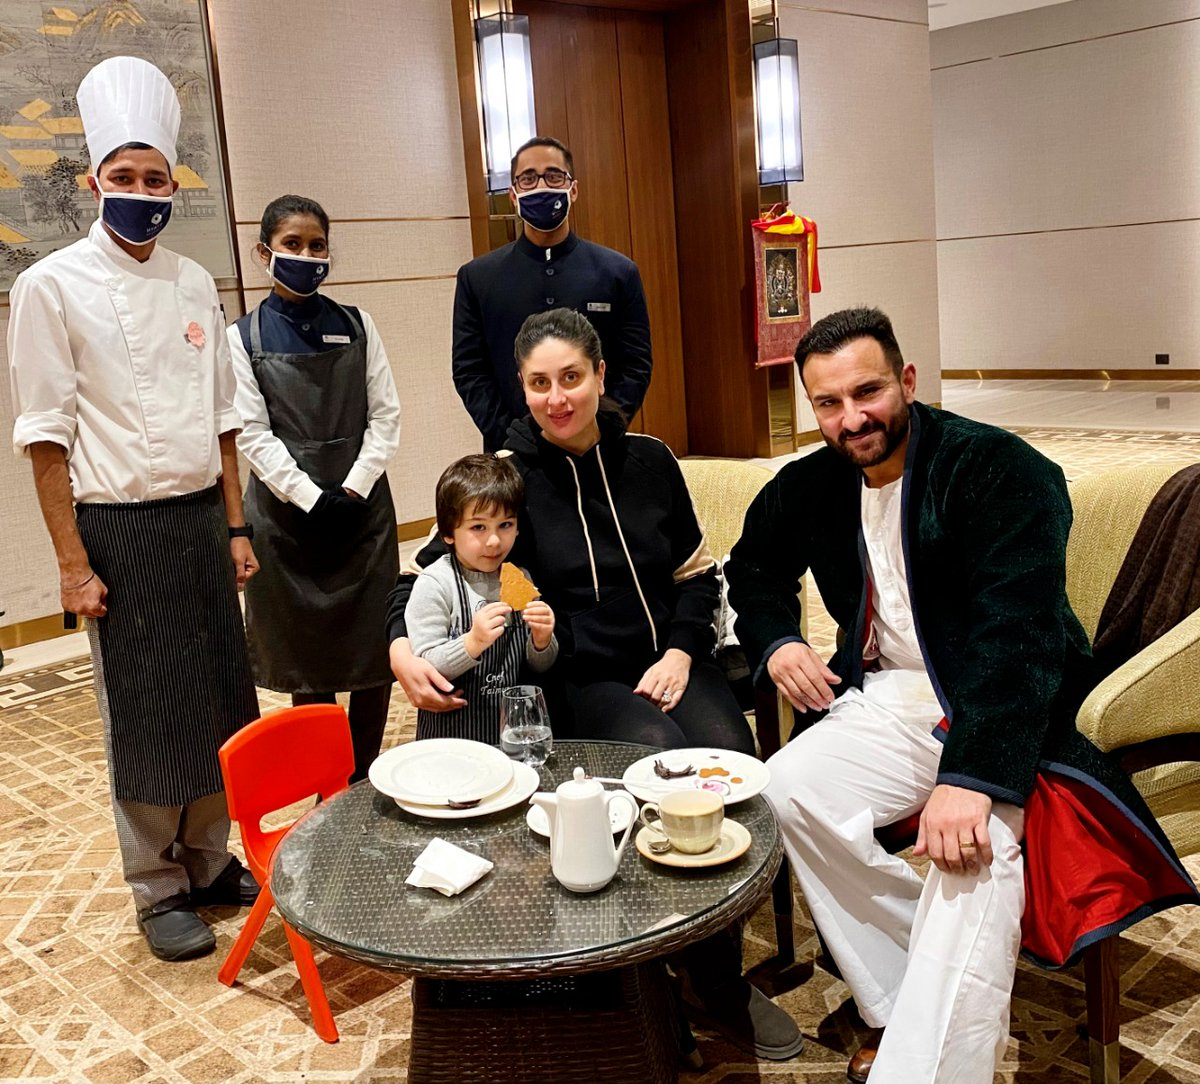 A glimpse of the exclusive culinary session organised by us for Master Taimur Ali Khan and family. Thank you for trusting us with this Mrs Kareena Kapoor Khan and Mr. #SaifAliKhan.   #ShantiMoments #Dharamshala #HyattRegencyDharamshalaResort #KareenaKapoorKhan #TaimurAliKhan